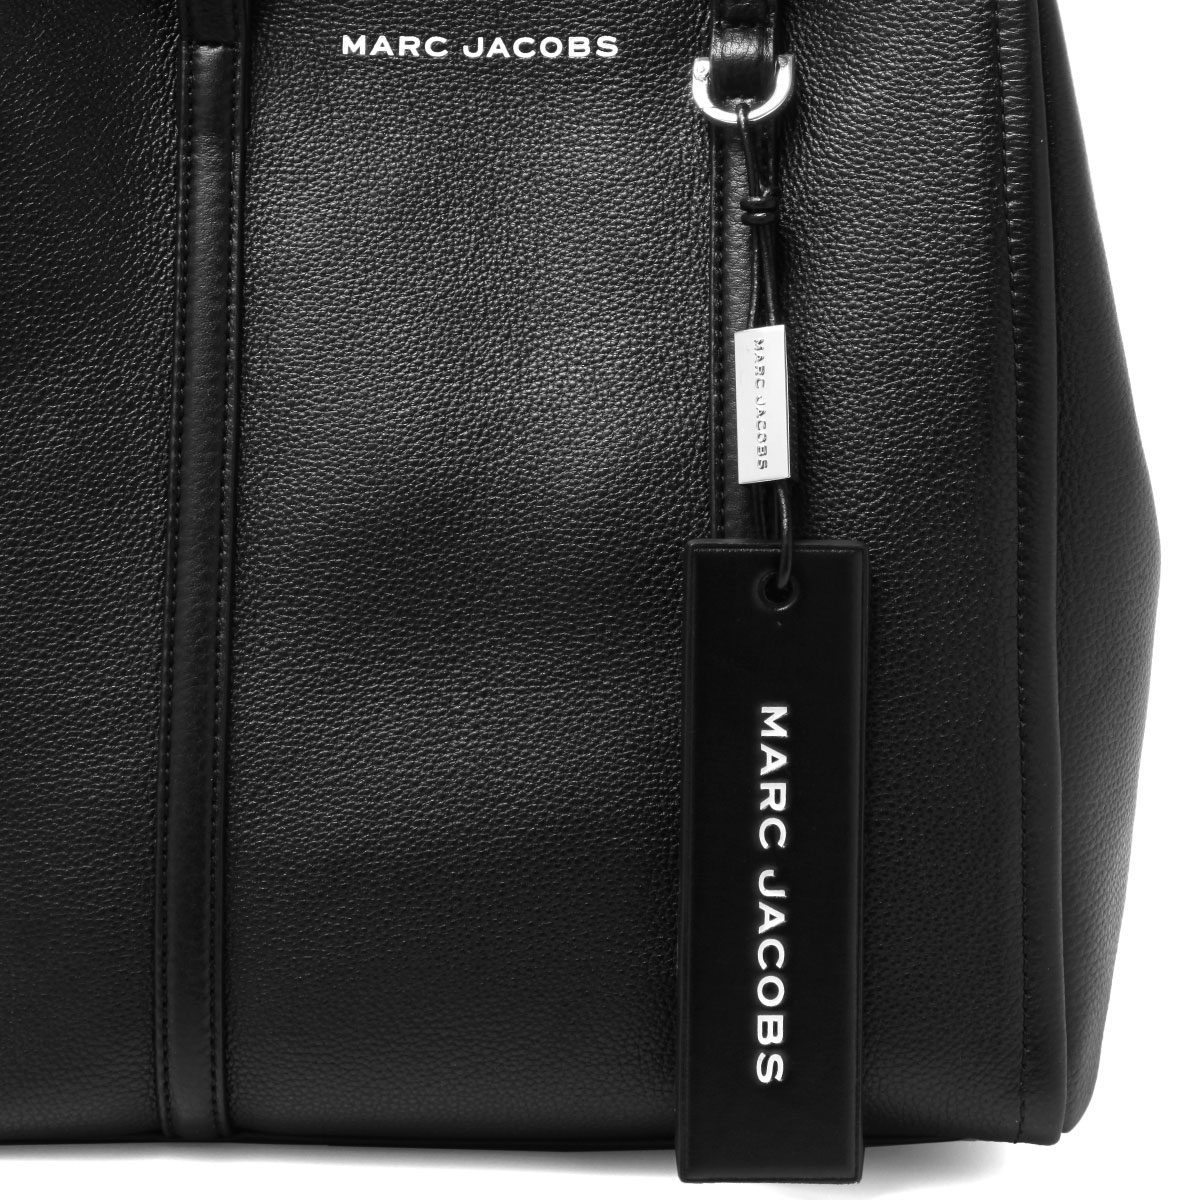 MARC JACOBS マーク ジェイコブス | トートバッグ | THE TAG 27 ザ タグ 27